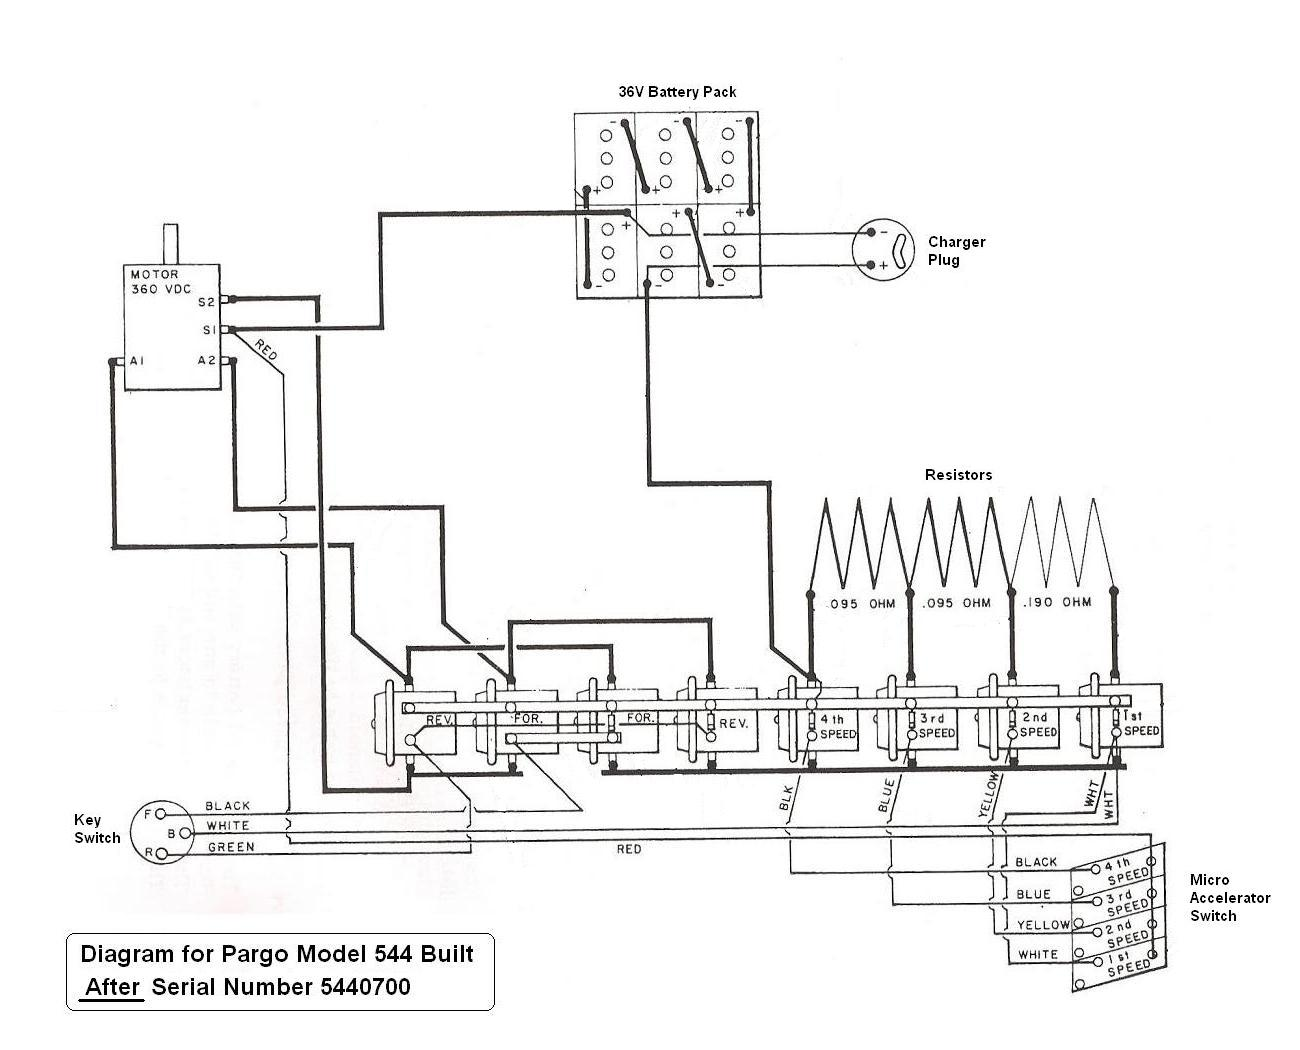 Golf Cart 36 Volt Light Wiring Diagram - Schematic Liry Electric Club Car Golf Cart Wiring Diagram Lights on 86 club car wiring diagram, 97 club car wiring diagram, club car golf cart front suspension diagram, 85 club car wiring diagram, 1980 club car wiring diagram, club cart parts diagram, club car solenoid wiring diagram, club cart battery wiring diagram, electric club car problems, 1956 ford car wiring diagram, electric vehicle wiring harness, club car schematic diagram, 98 club car wiring diagram, 92 club car wiring diagram, electric club car parts diagram, club car 36 volt battery diagram, 1992 club car wiring diagram, 1994 club car wiring diagram, club car controller diagram, 1991 club car wiring diagram,